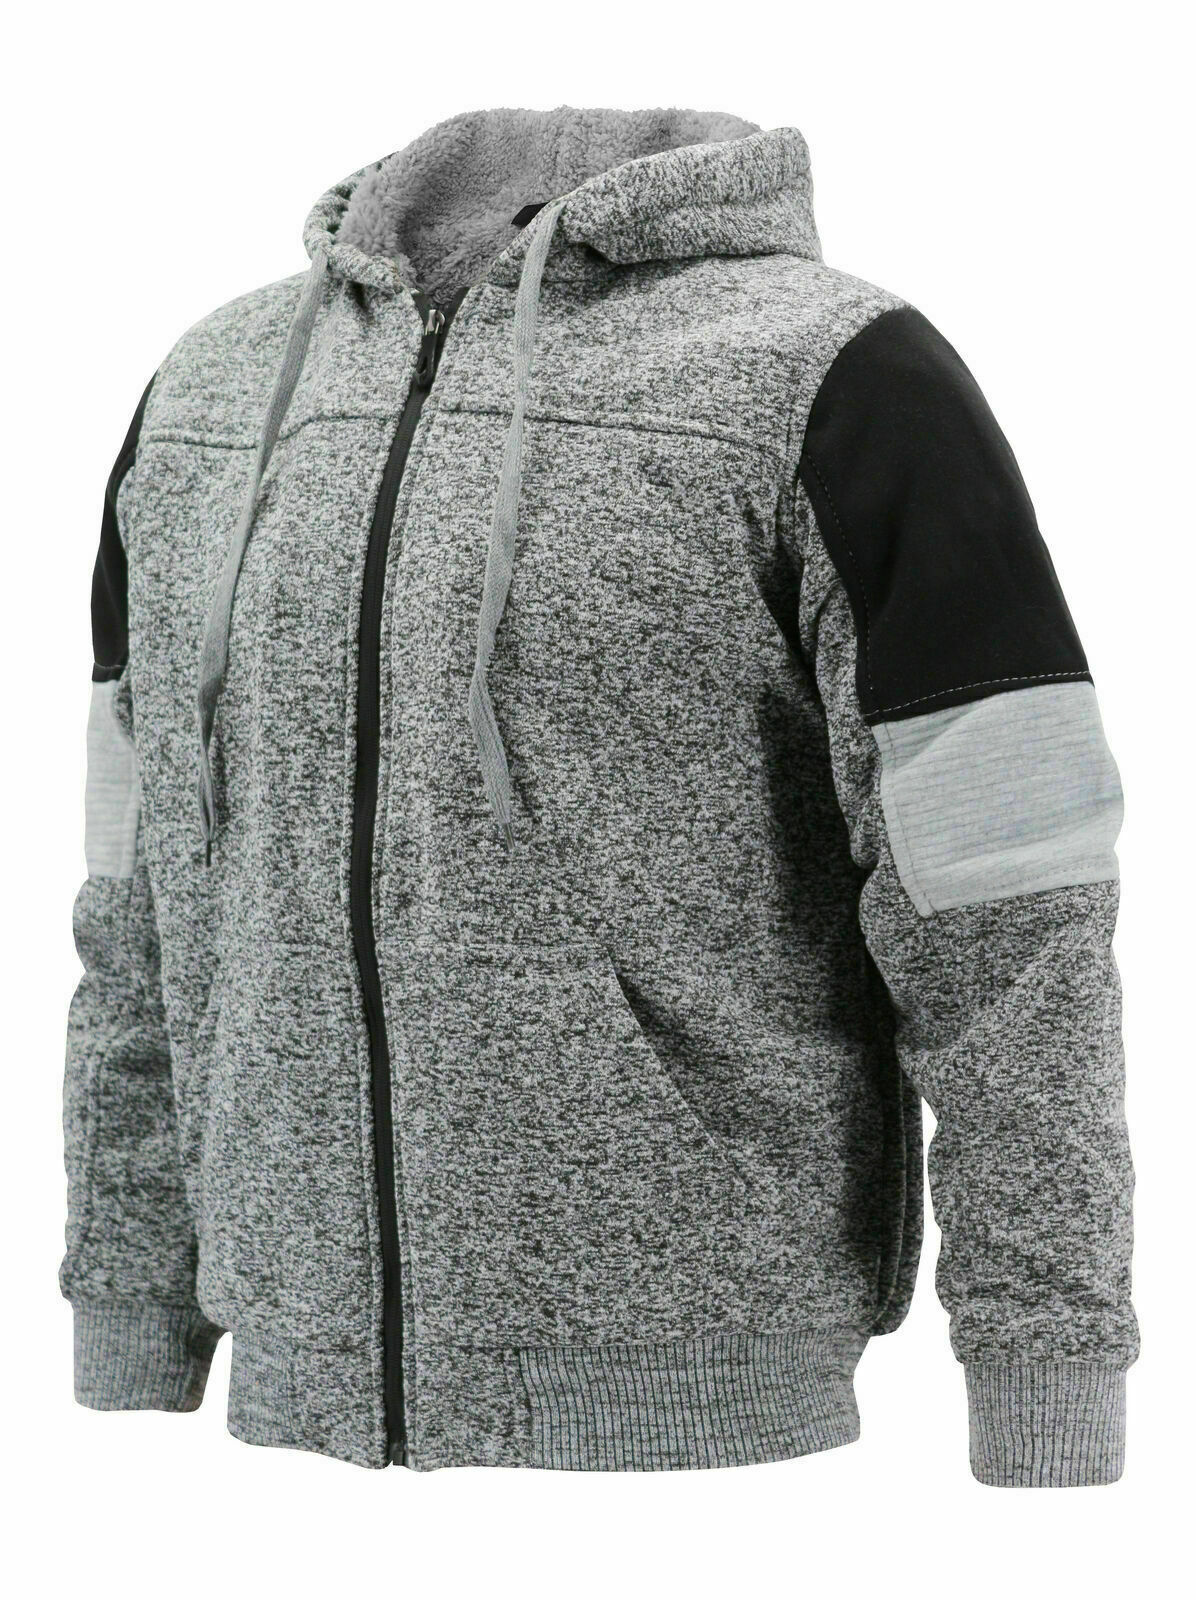 Men's Two Tone Sherpa Lined Moto Quilted Fleece Hoodie Jacket w/ Defect 2XL